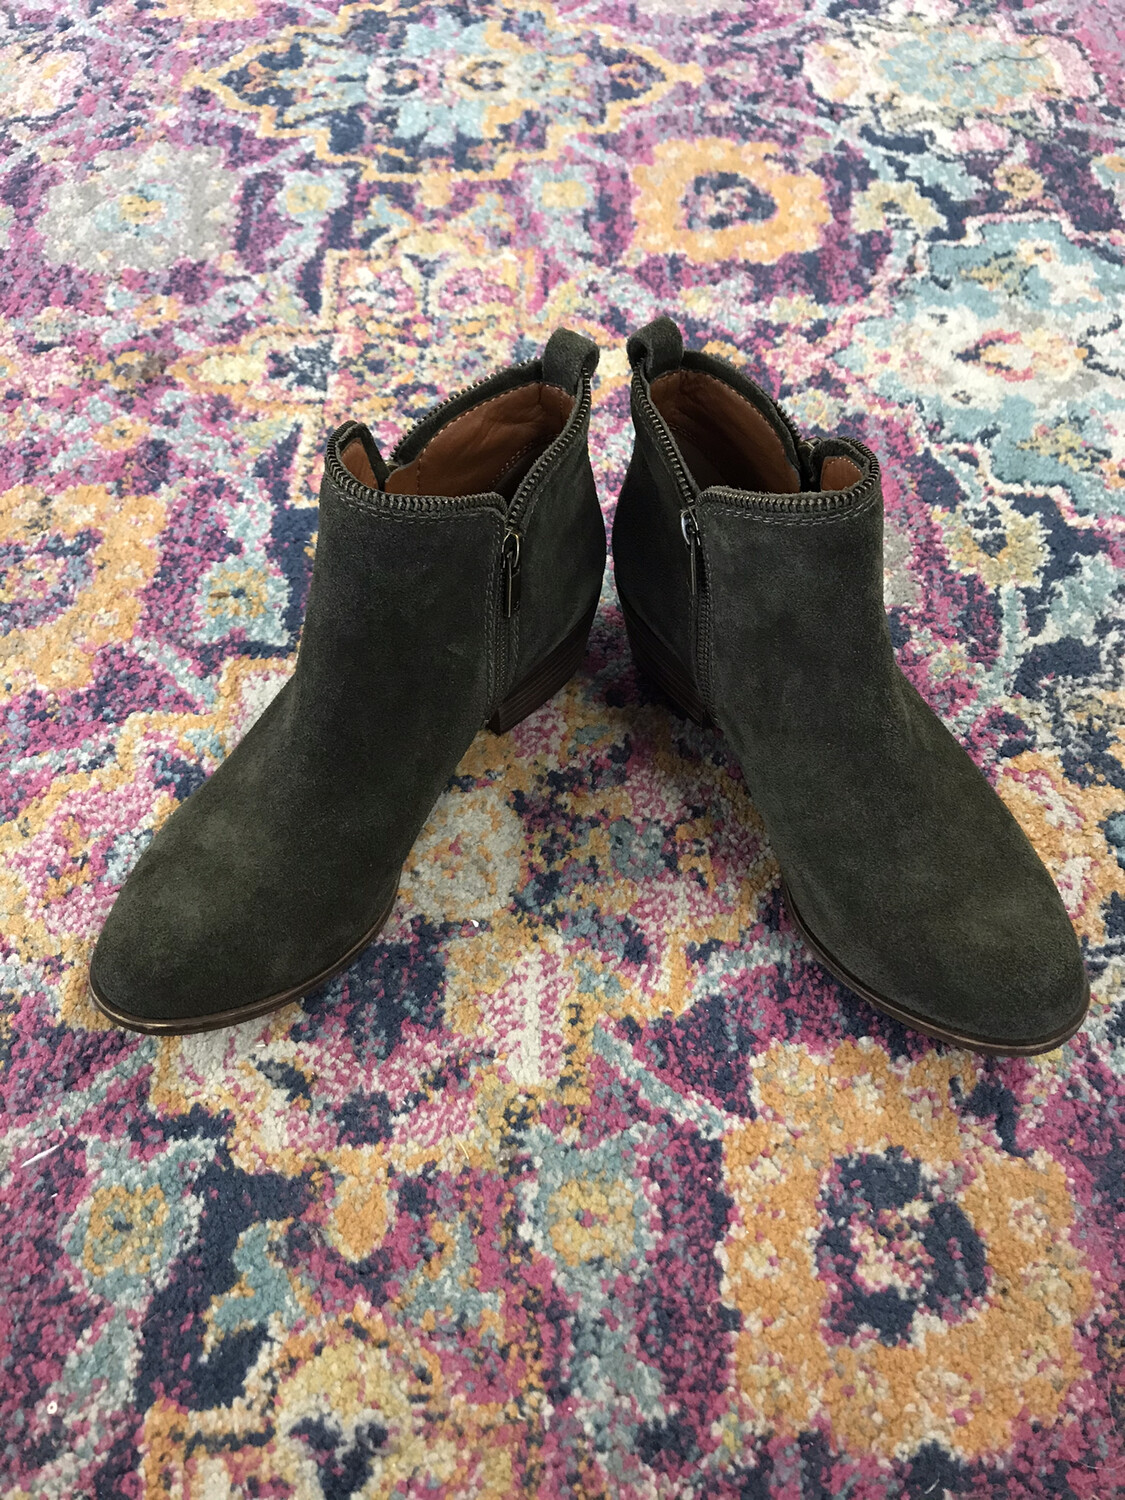 Lucky Brand Green Leather Boots - Size 8.5